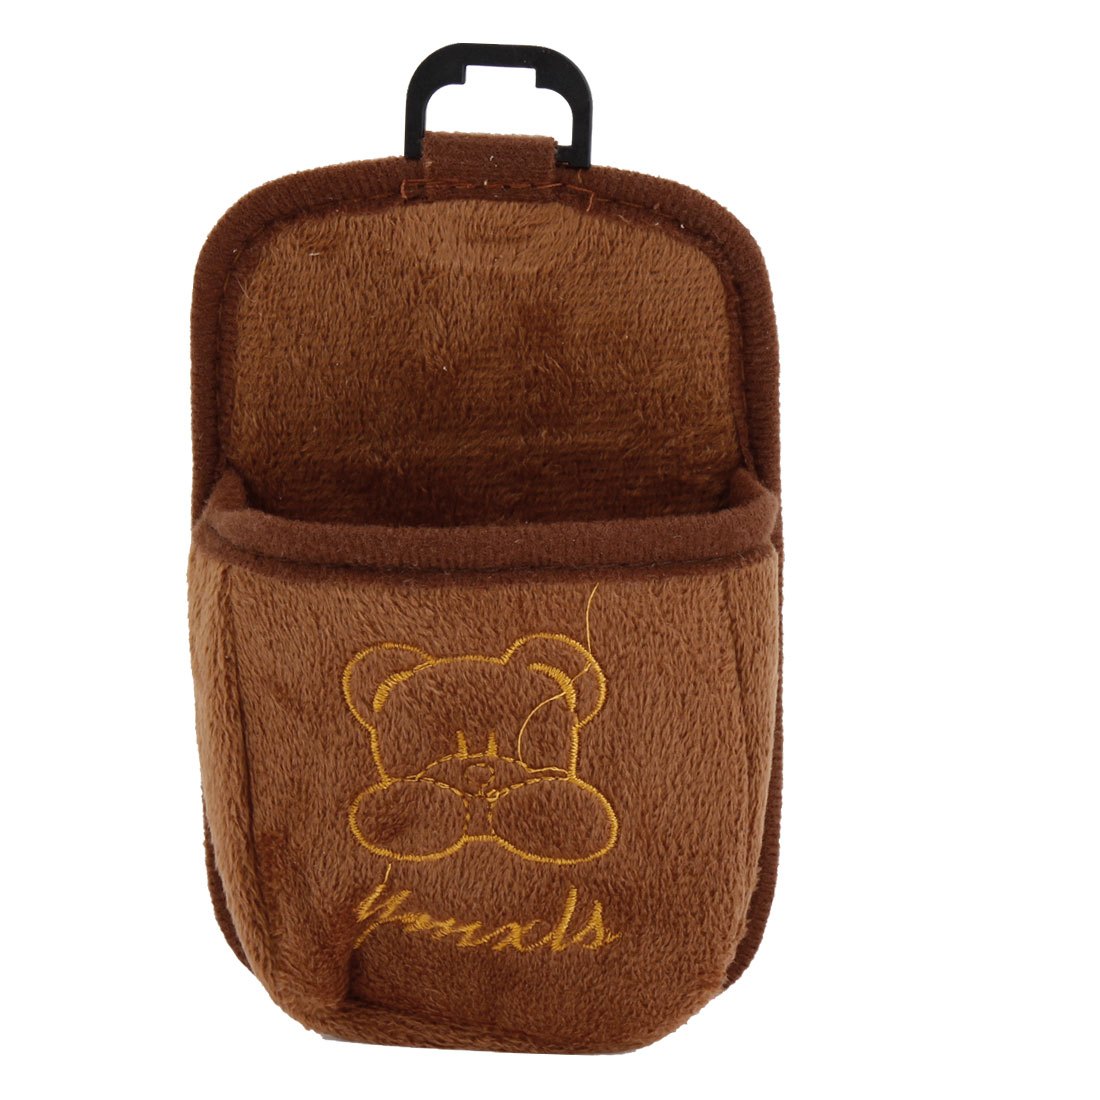 Car Air Vent Bear Decor Plush Storage Bag Pocket Cell Phone Holder Brown